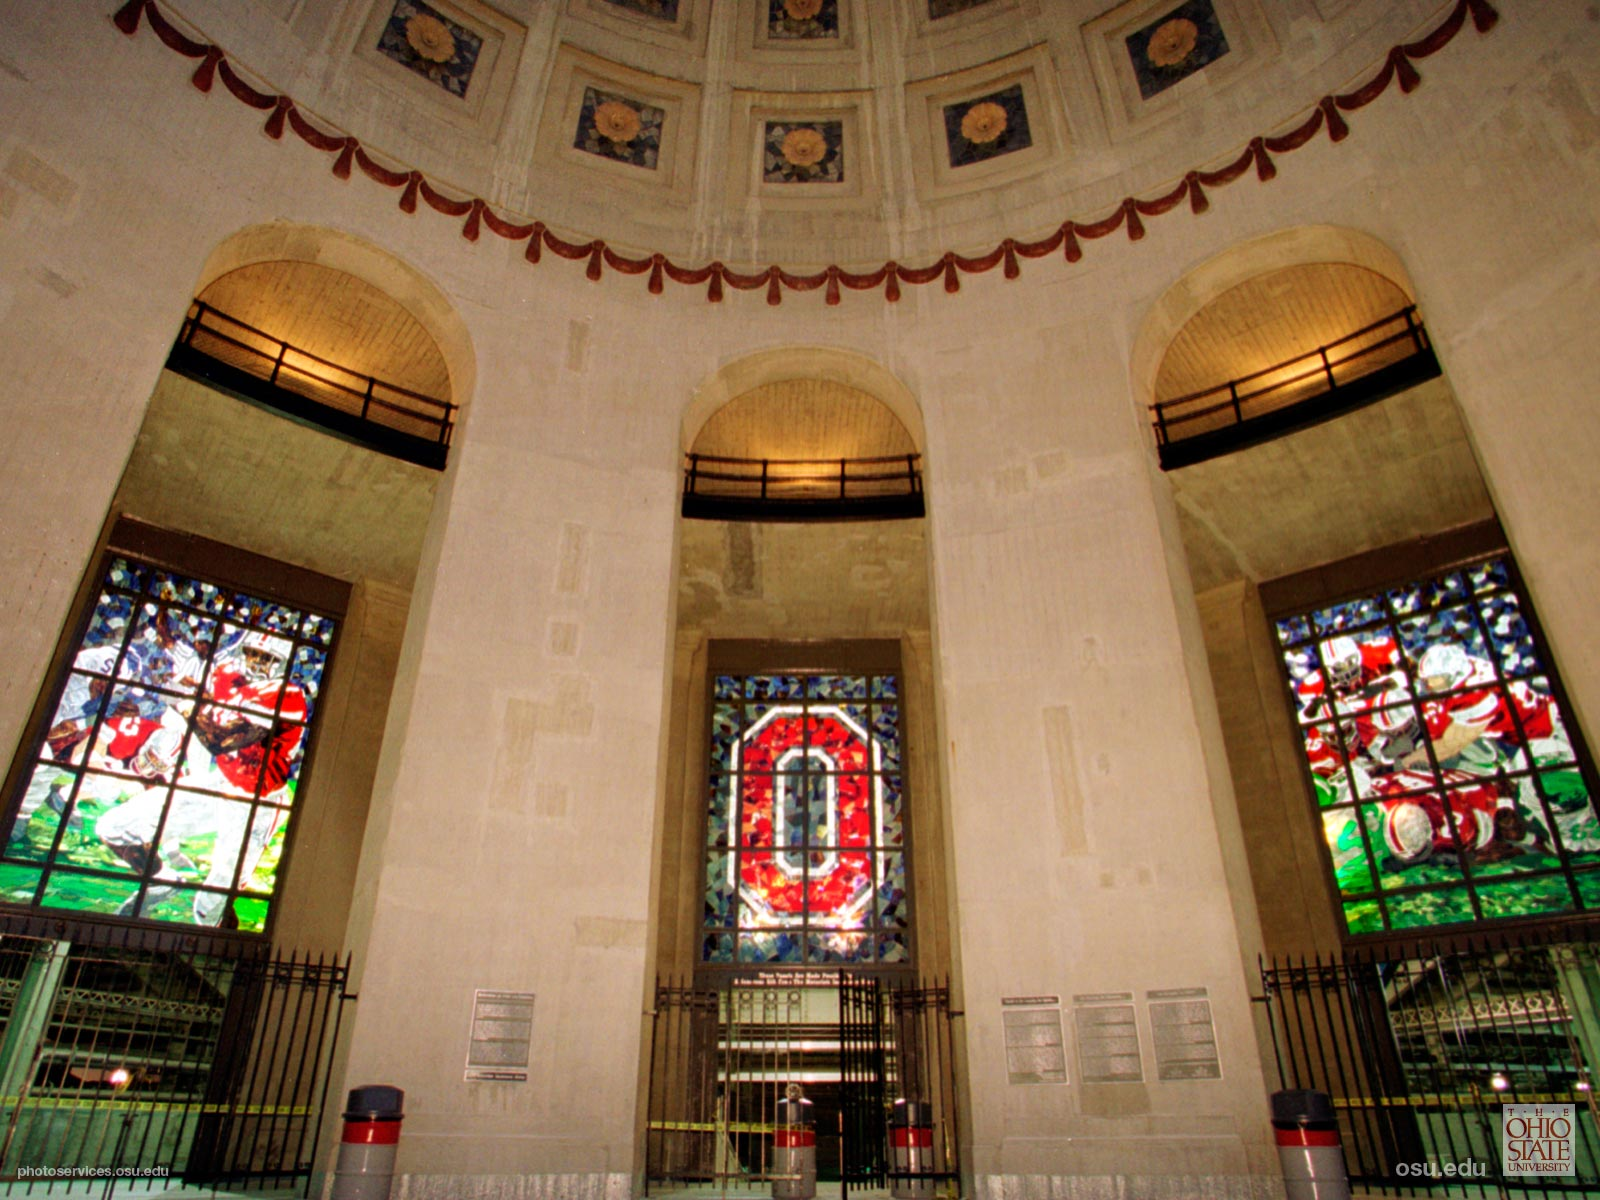 Stadium Stained Glass Windows Ohio Rotunda